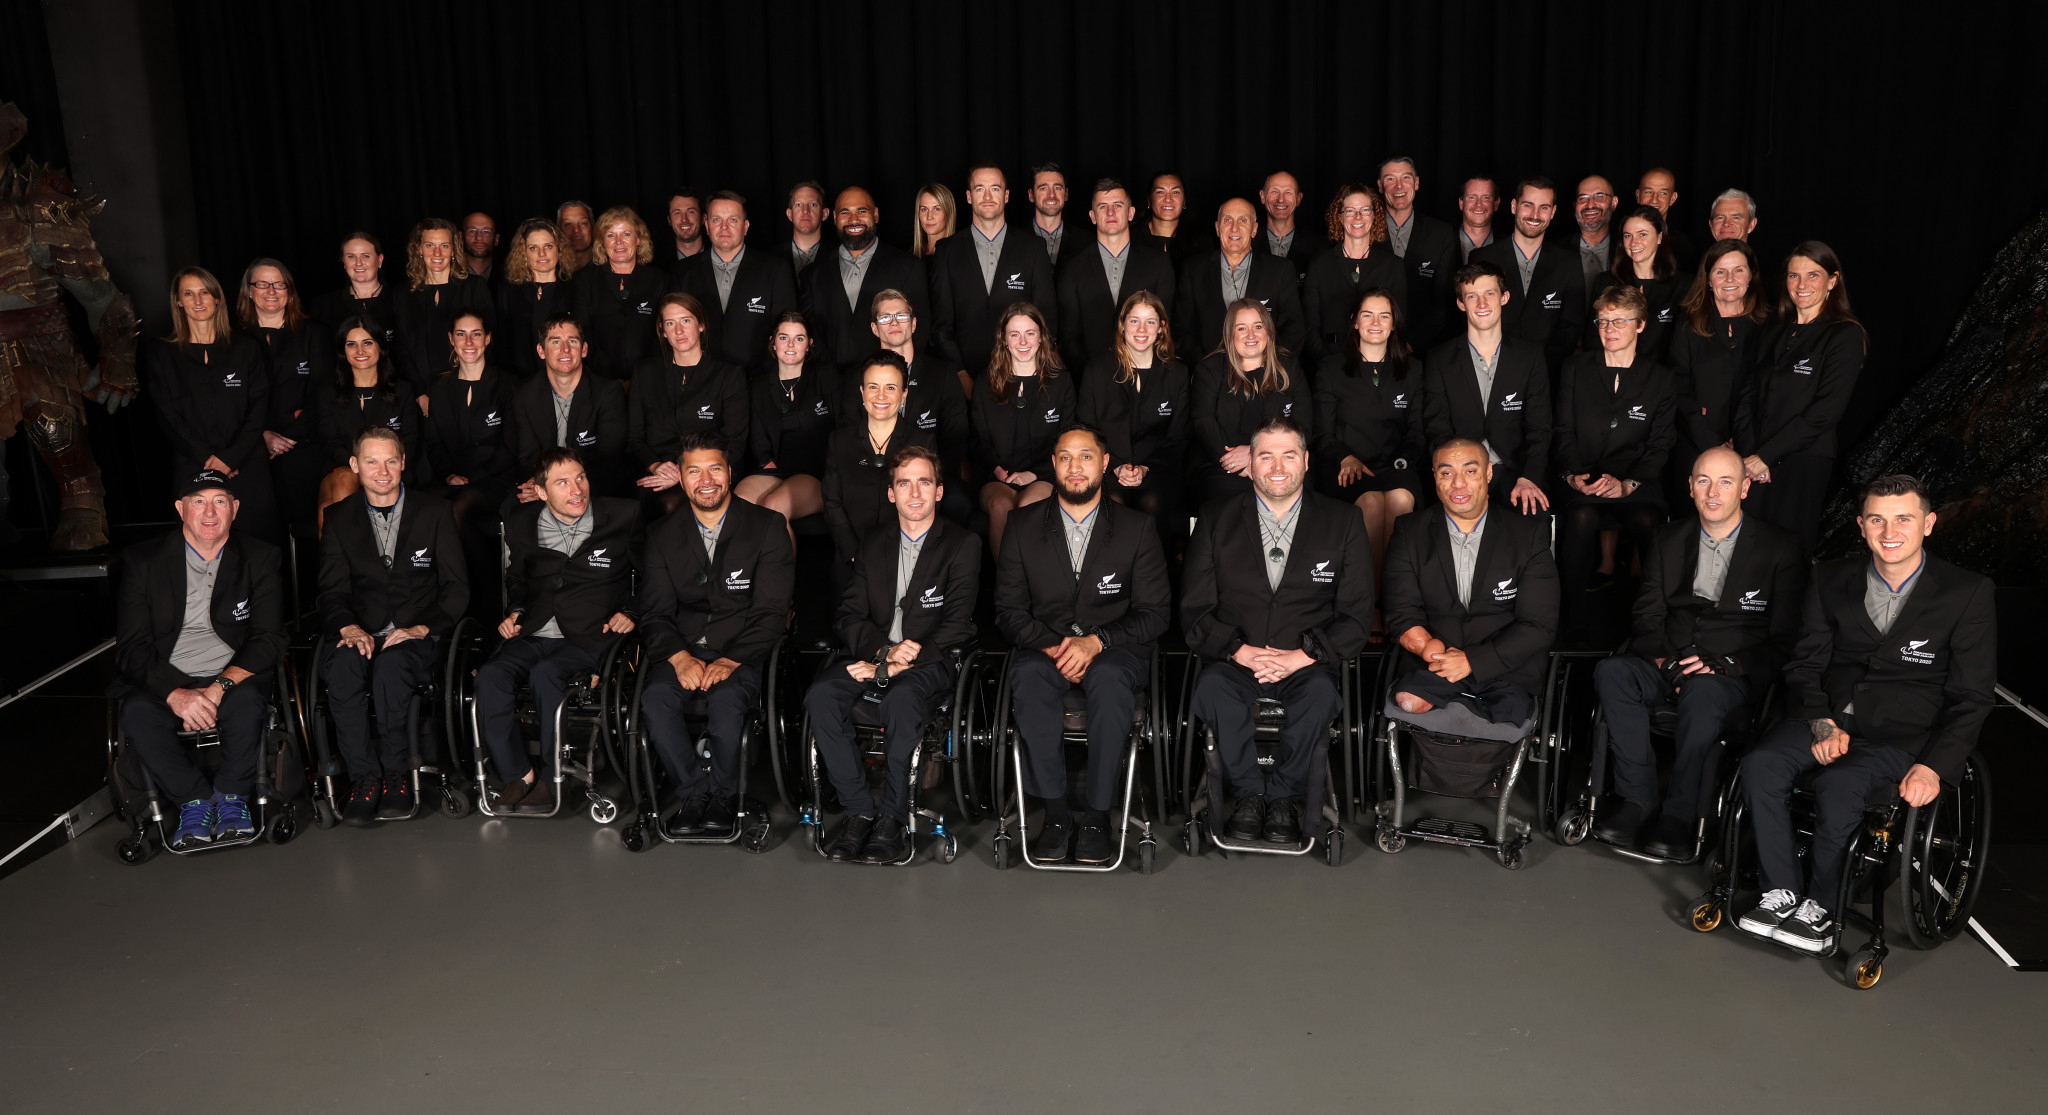 New Zealand's Paralympic team unveiled and given special send-off for Tokyo 2020